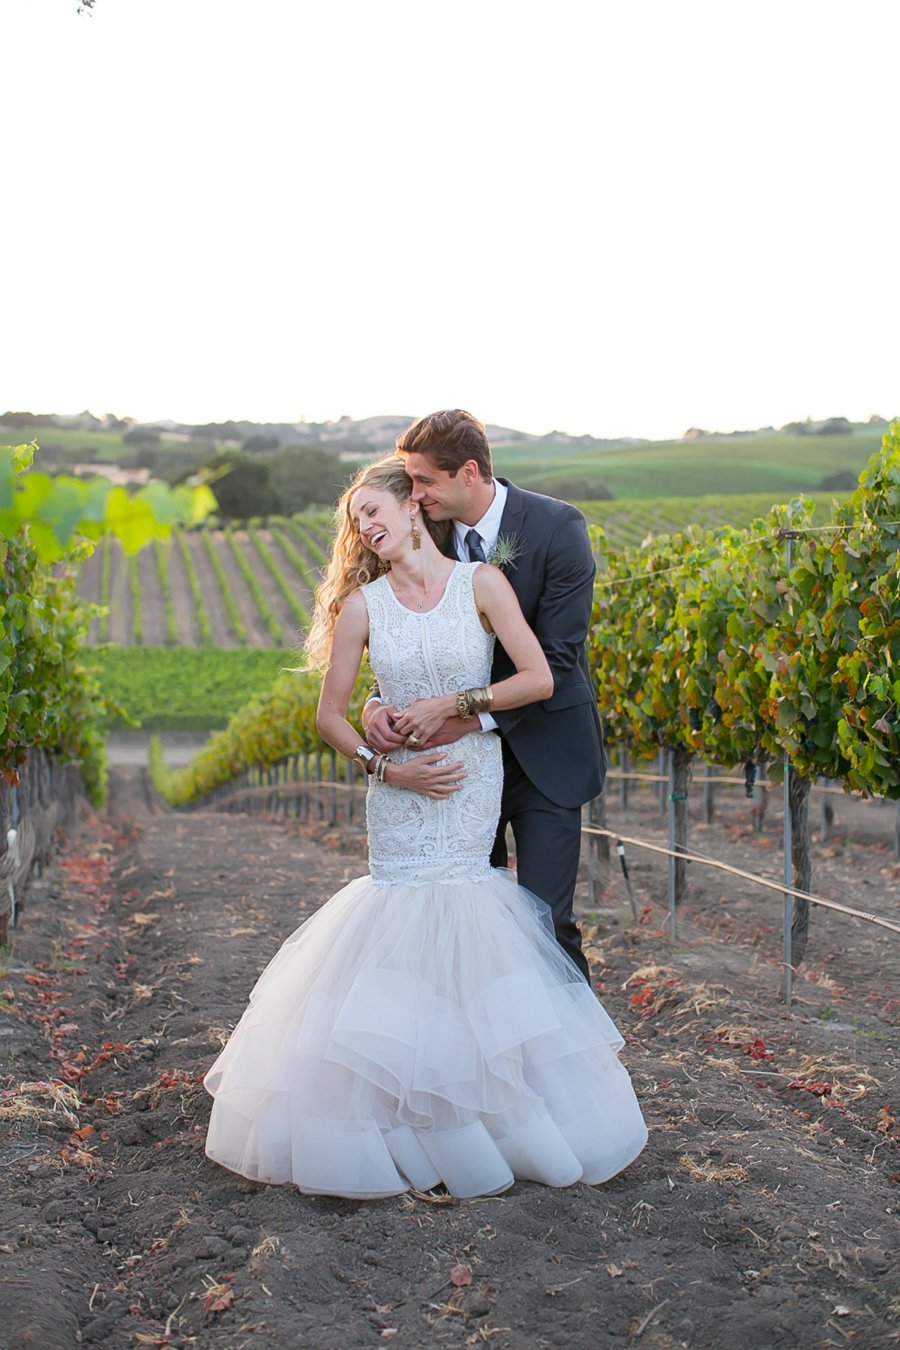 STOLPMANN VILLA AND VINEYARDS | LOS OLIVOS WEDDING PHOTOGRAPHER CHRIS HOLT PHOTOGRAPHY_067.jpg